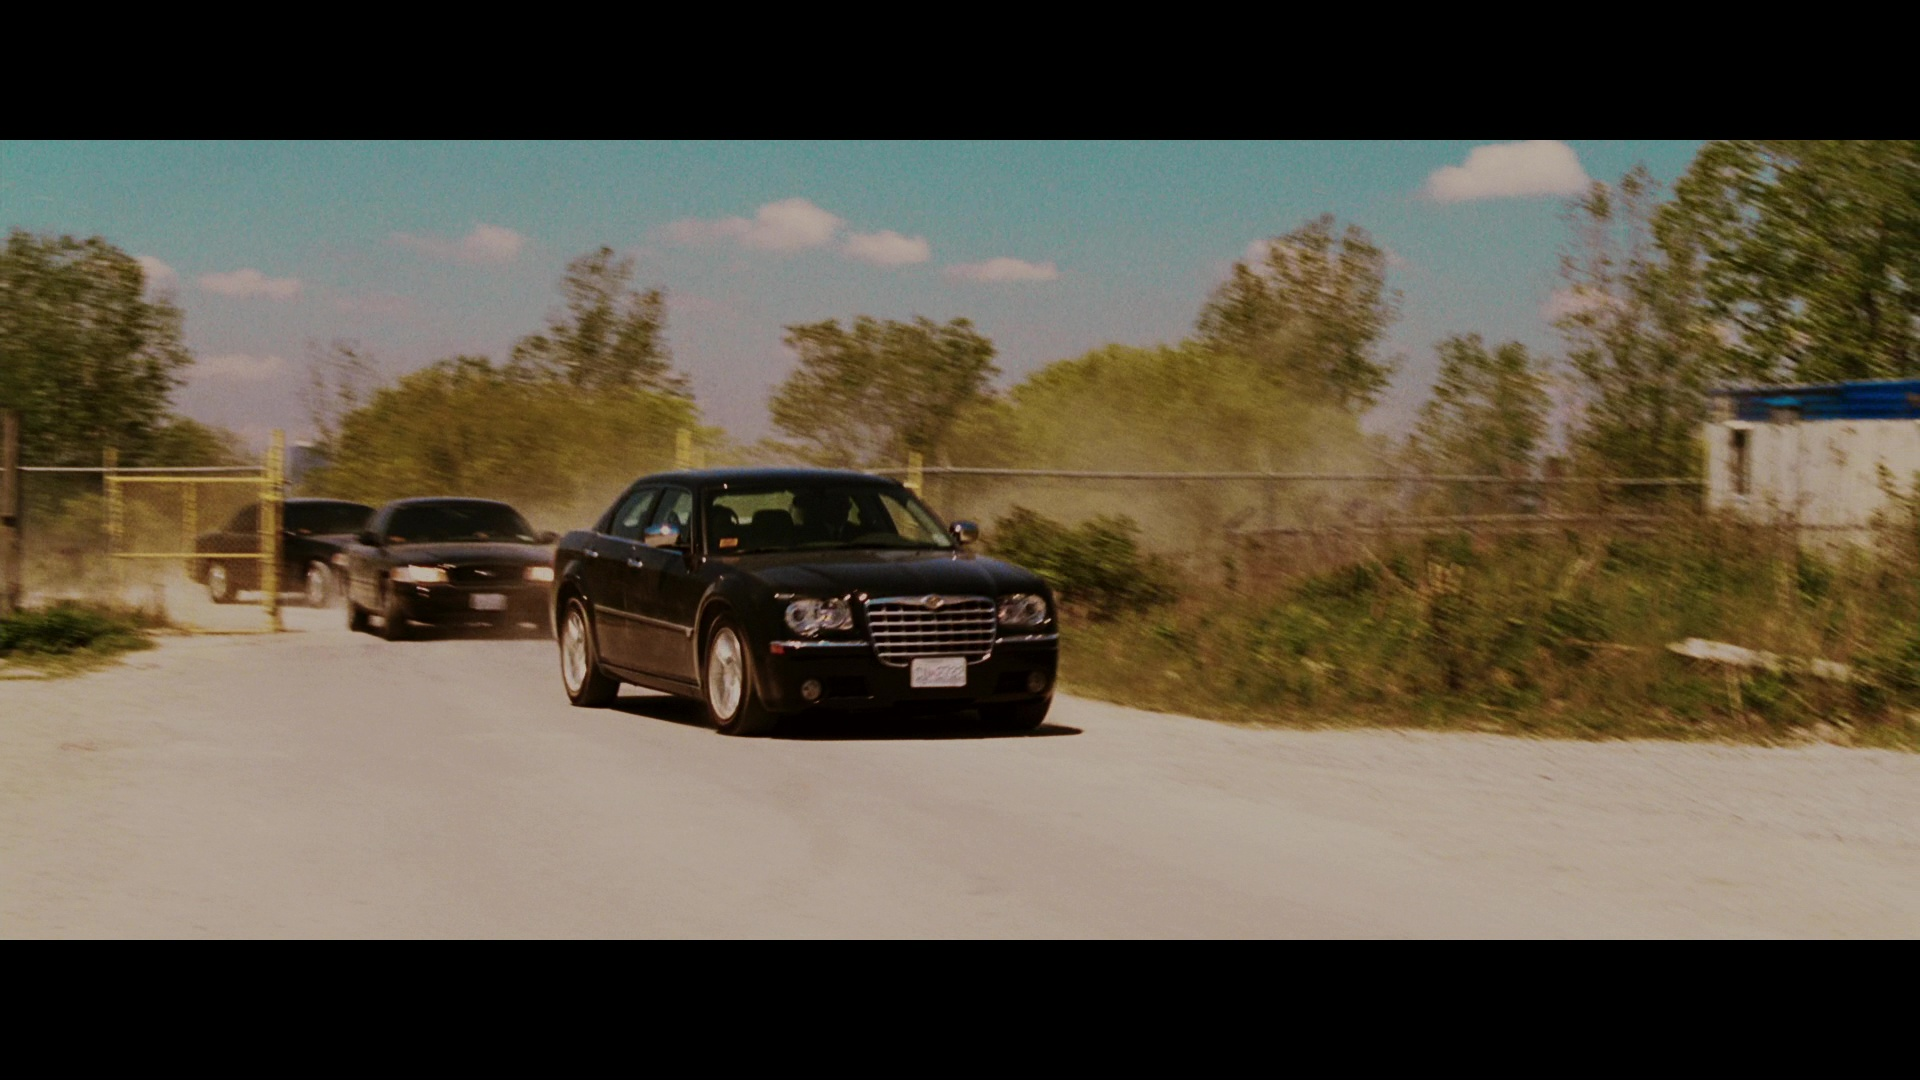 Used Cars Red Deer >> Chrysler 300 Car Used by Kiefer Sutherland and Eva Longoria in The Sentinel (2006) Movie